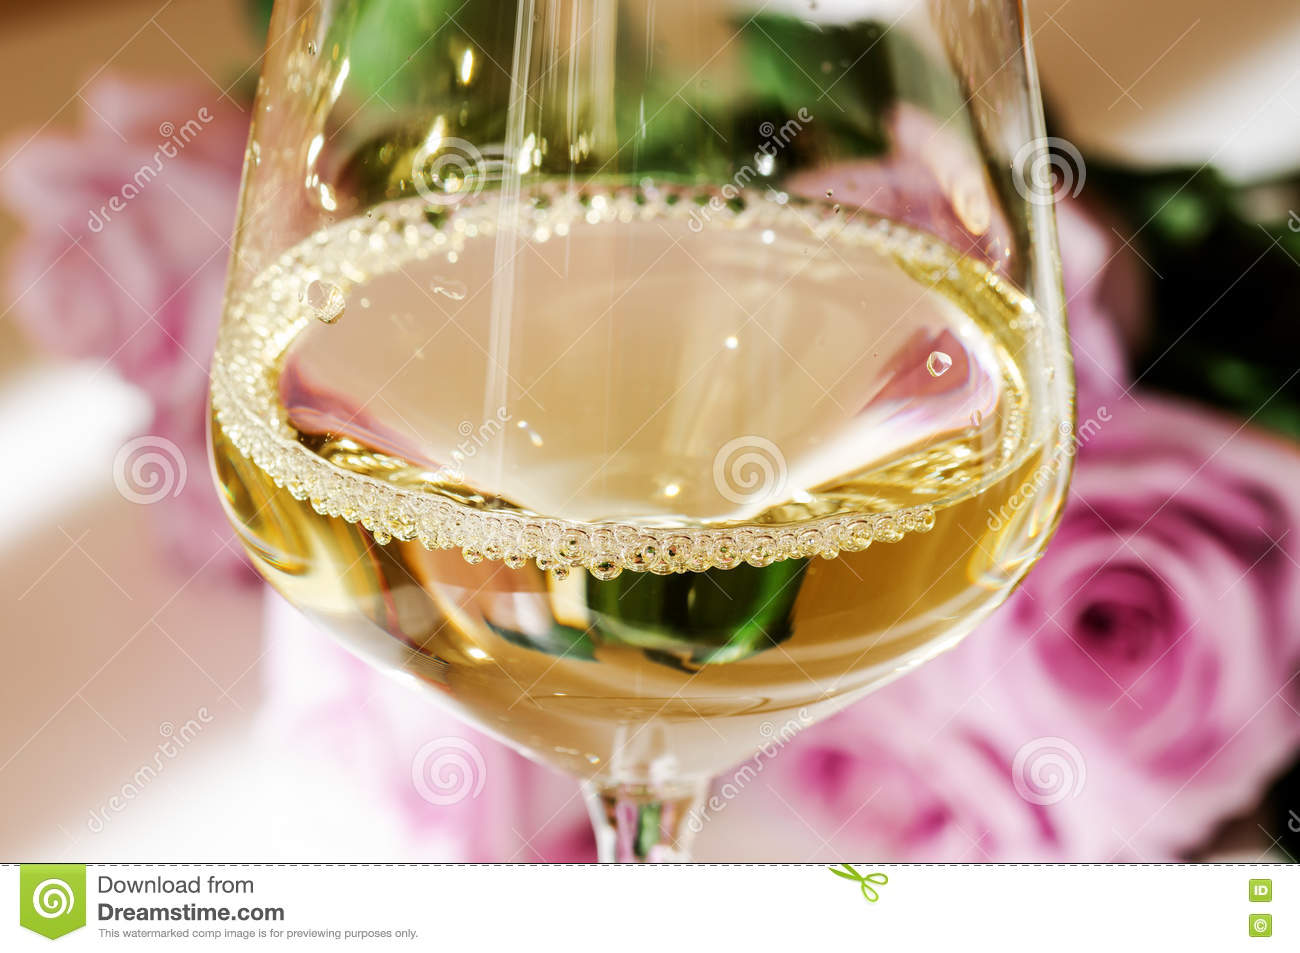 Bubbles in a glass of white wine stock image image of background bubbles in a glass of white wine flowers background mightylinksfo